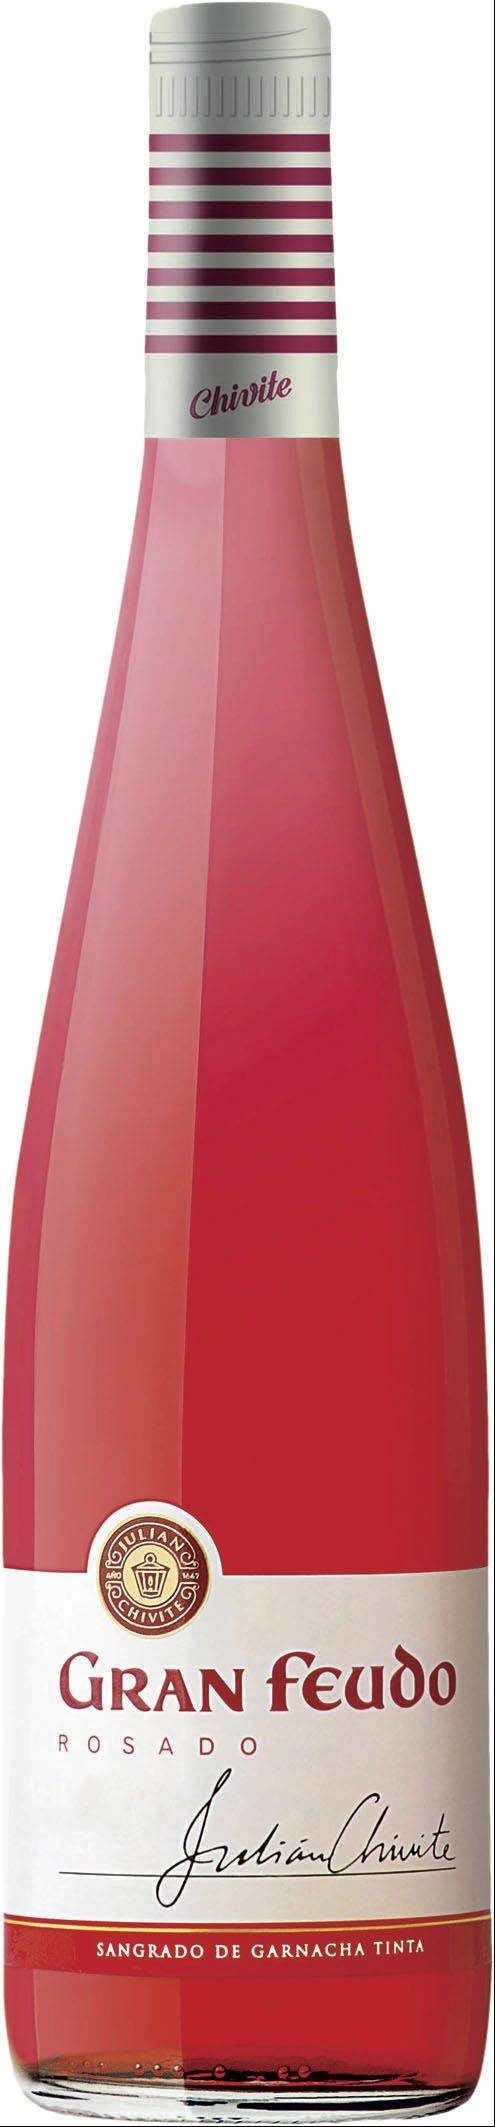 Mary Ross recommends Gran Fuedo Rosado from Navarra, Spain.